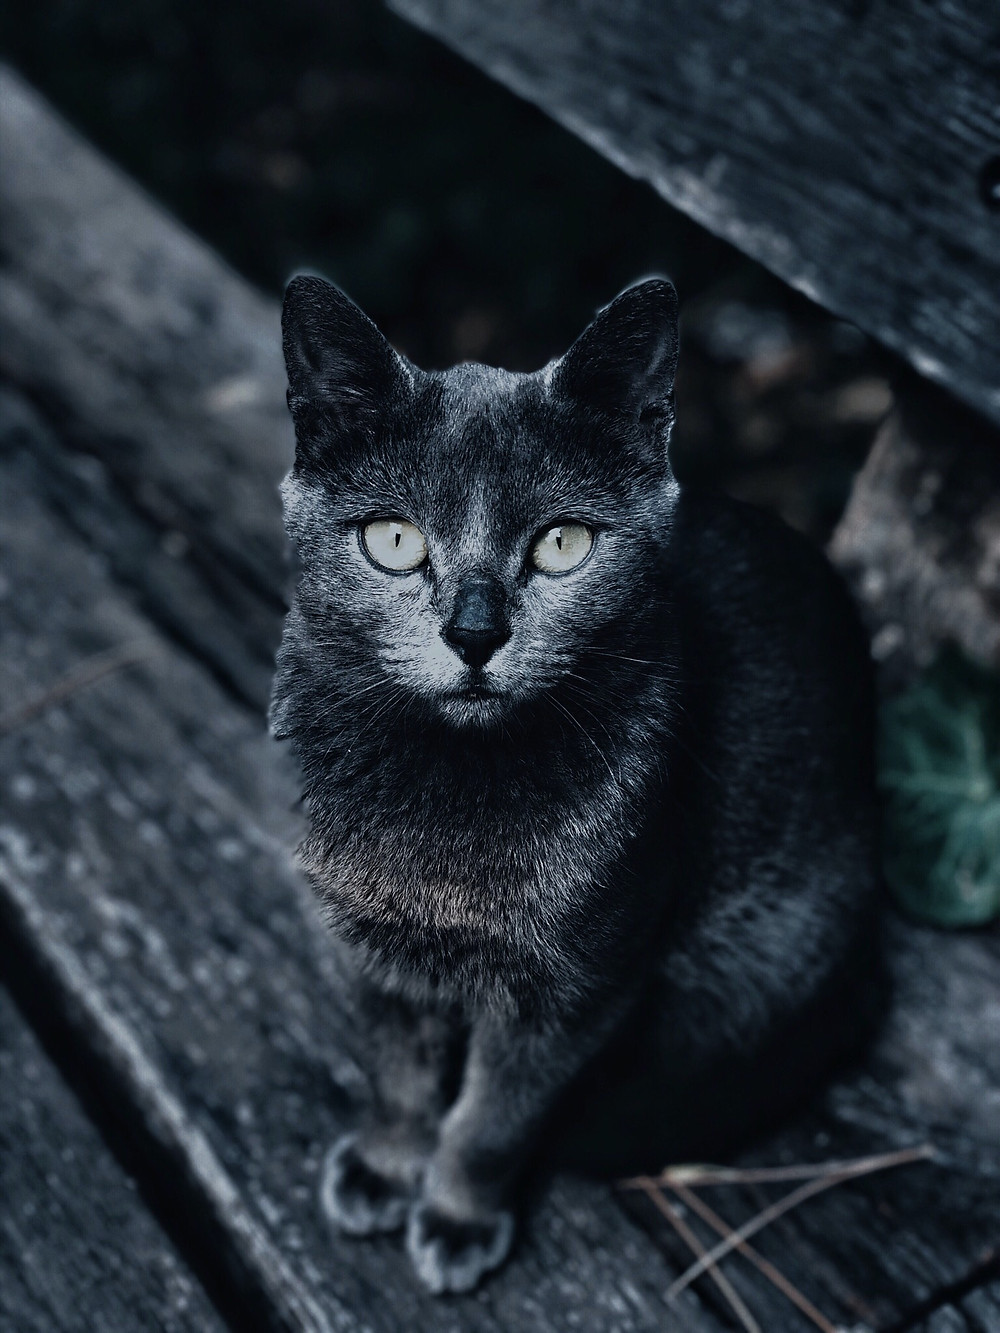 Thank your feline friend for guiding you on the right path and do witch work to break the misconception of a black cat being a bad omen.